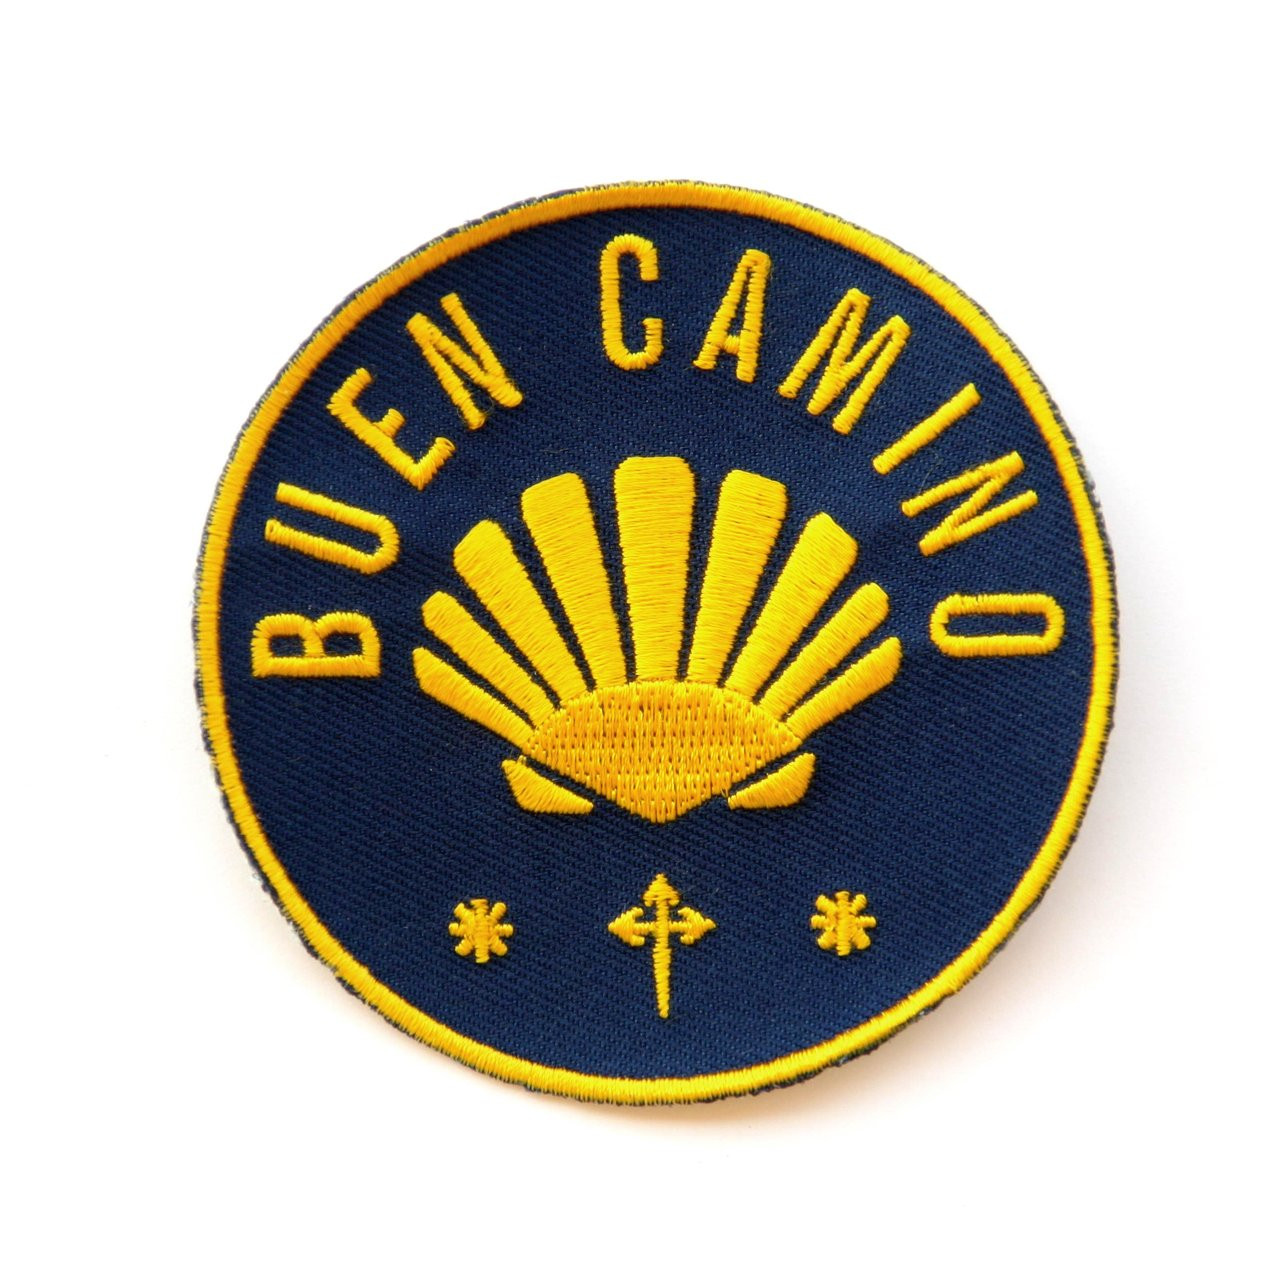 Camino De Santiago Buen Camino Cloth Patch With Scallop Shell